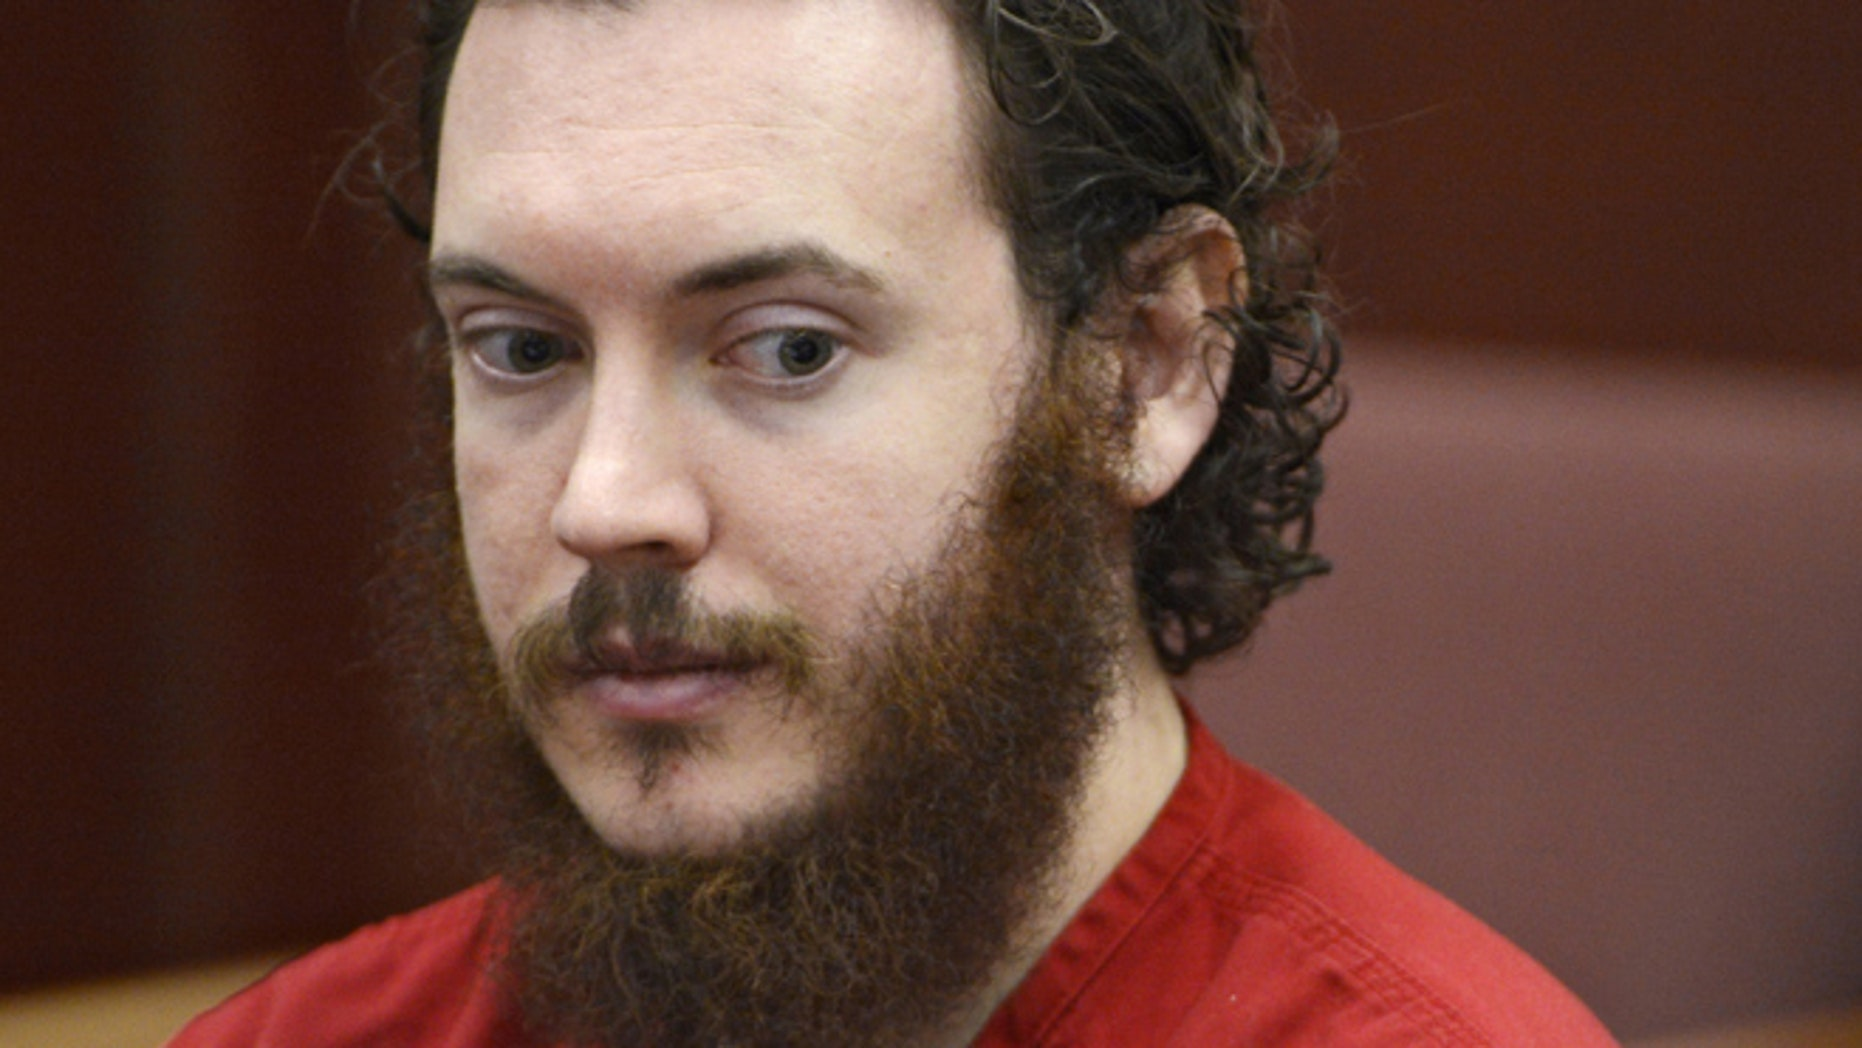 June 4, 2013: In this file photo, Aurora theater shooting suspect James Holmes appears in court in Centennial, Colo.